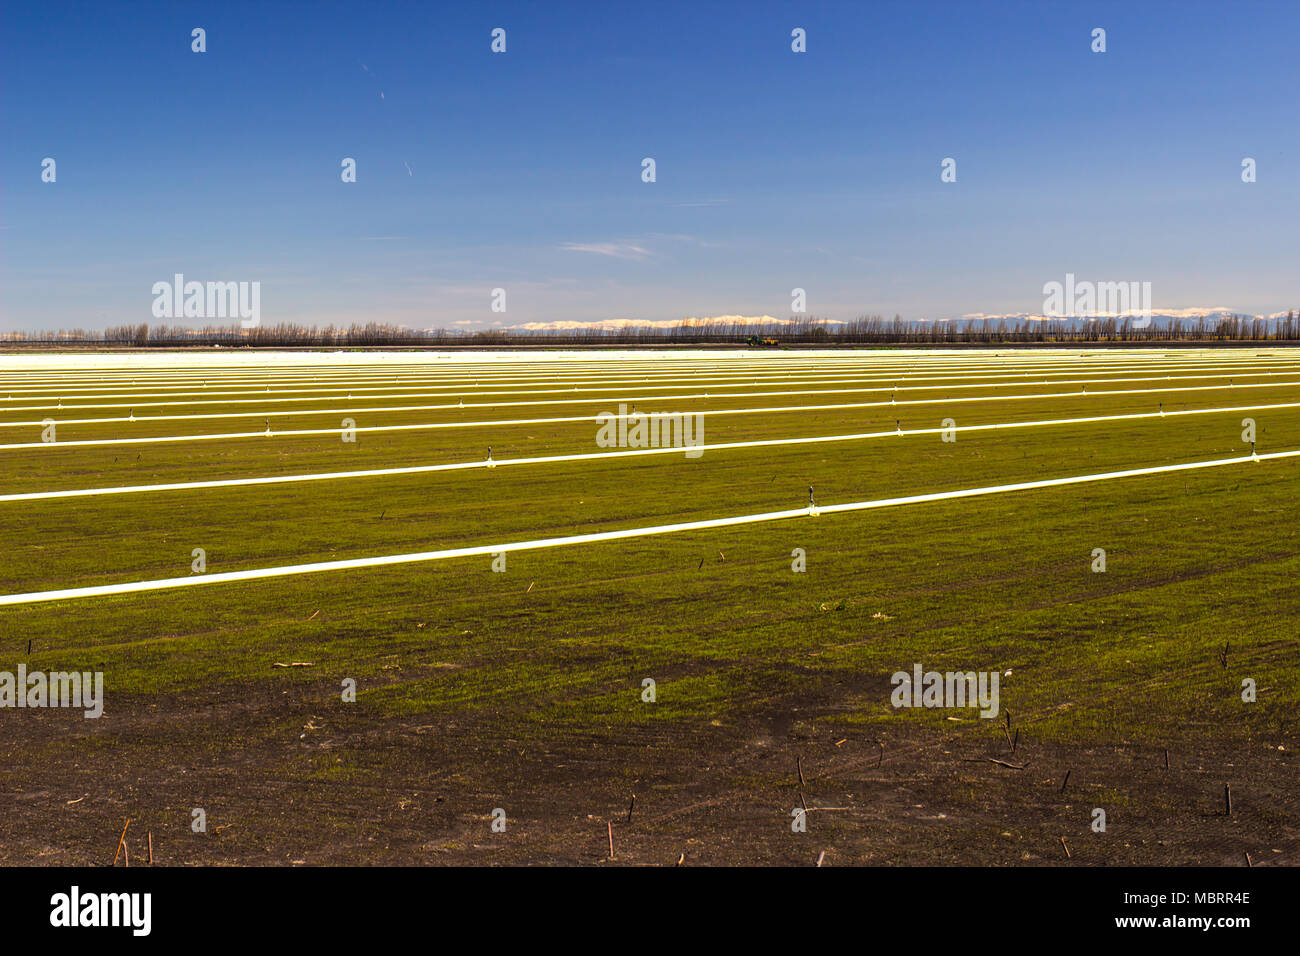 Rows Of Irrigation Pipes & Sprinklers On Farm Field - Stock Image